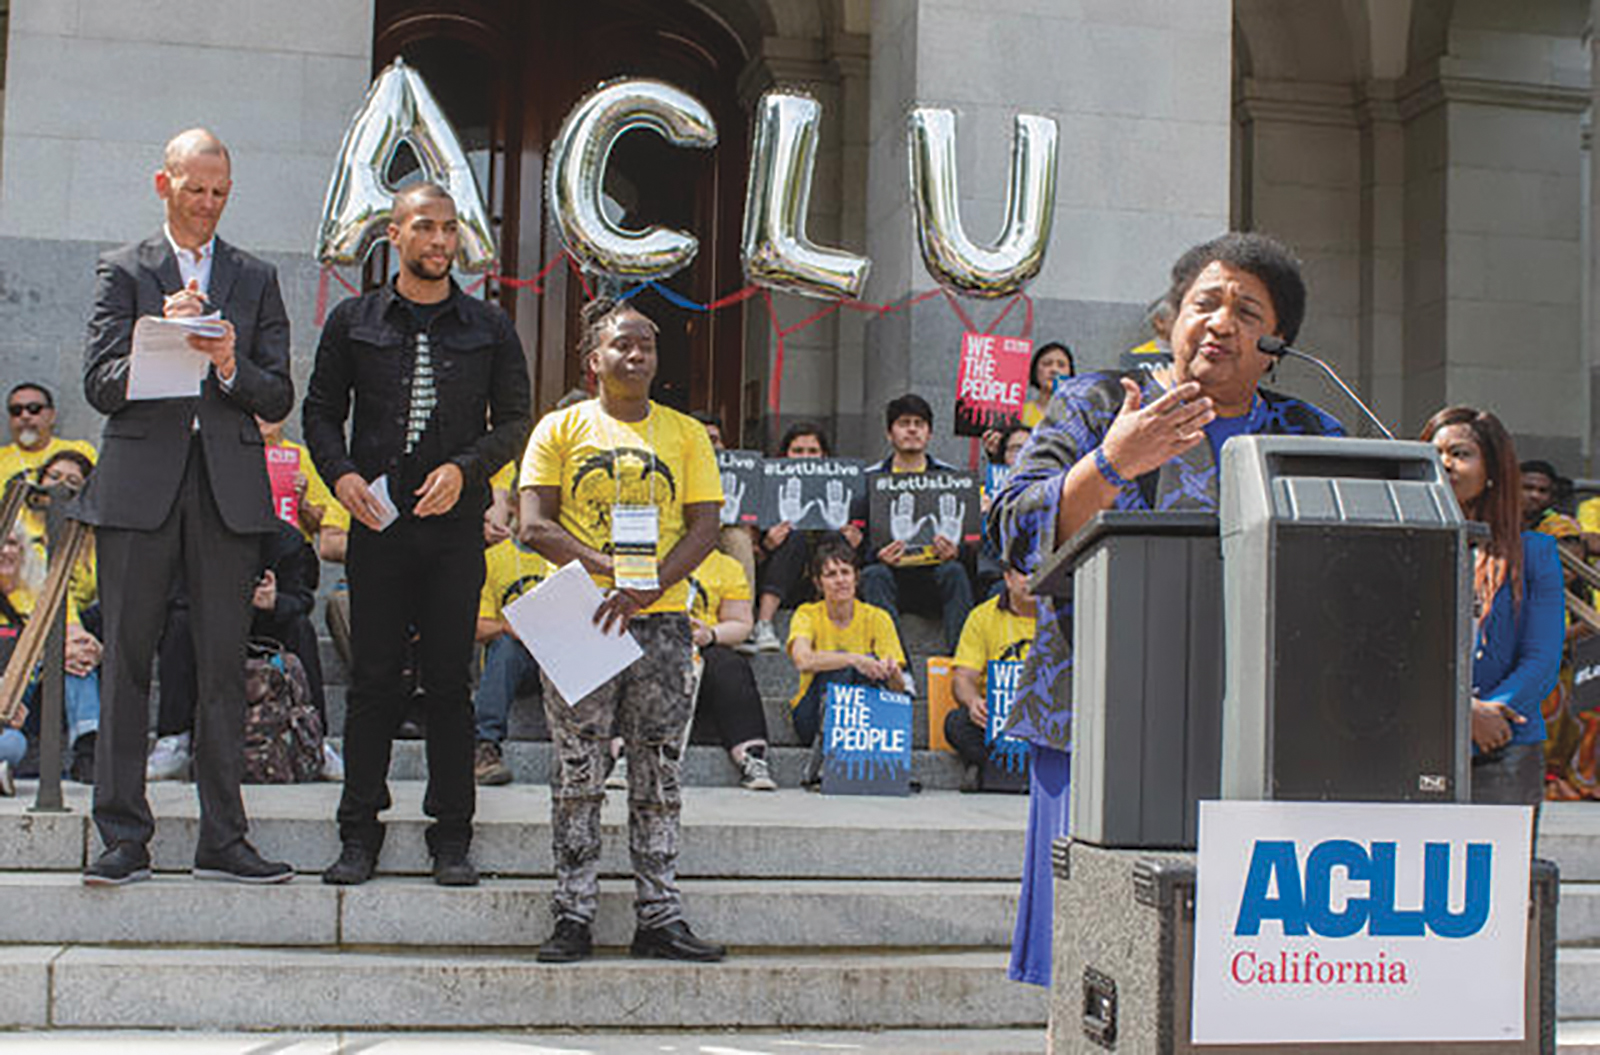 Assemblymember Shirley Weber speaks at a press rally before the police use of force bill AB 392 hearing. (Photo by Russell Stiger Jr.)